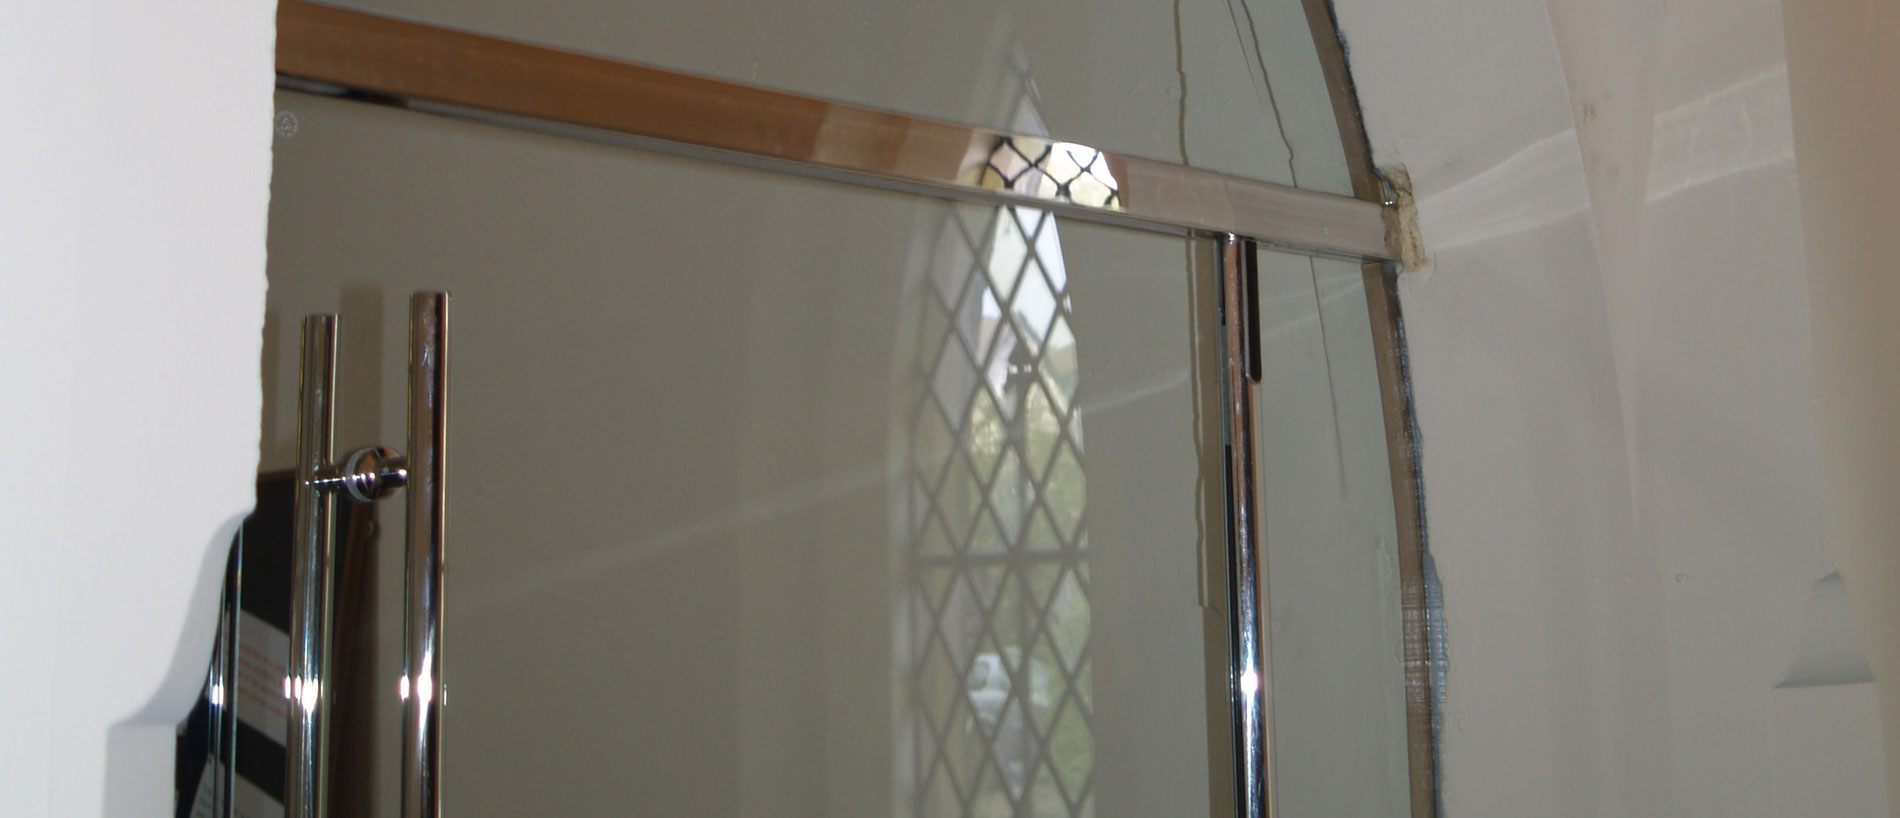 Frameless Glass Doors, St. Mark's Church